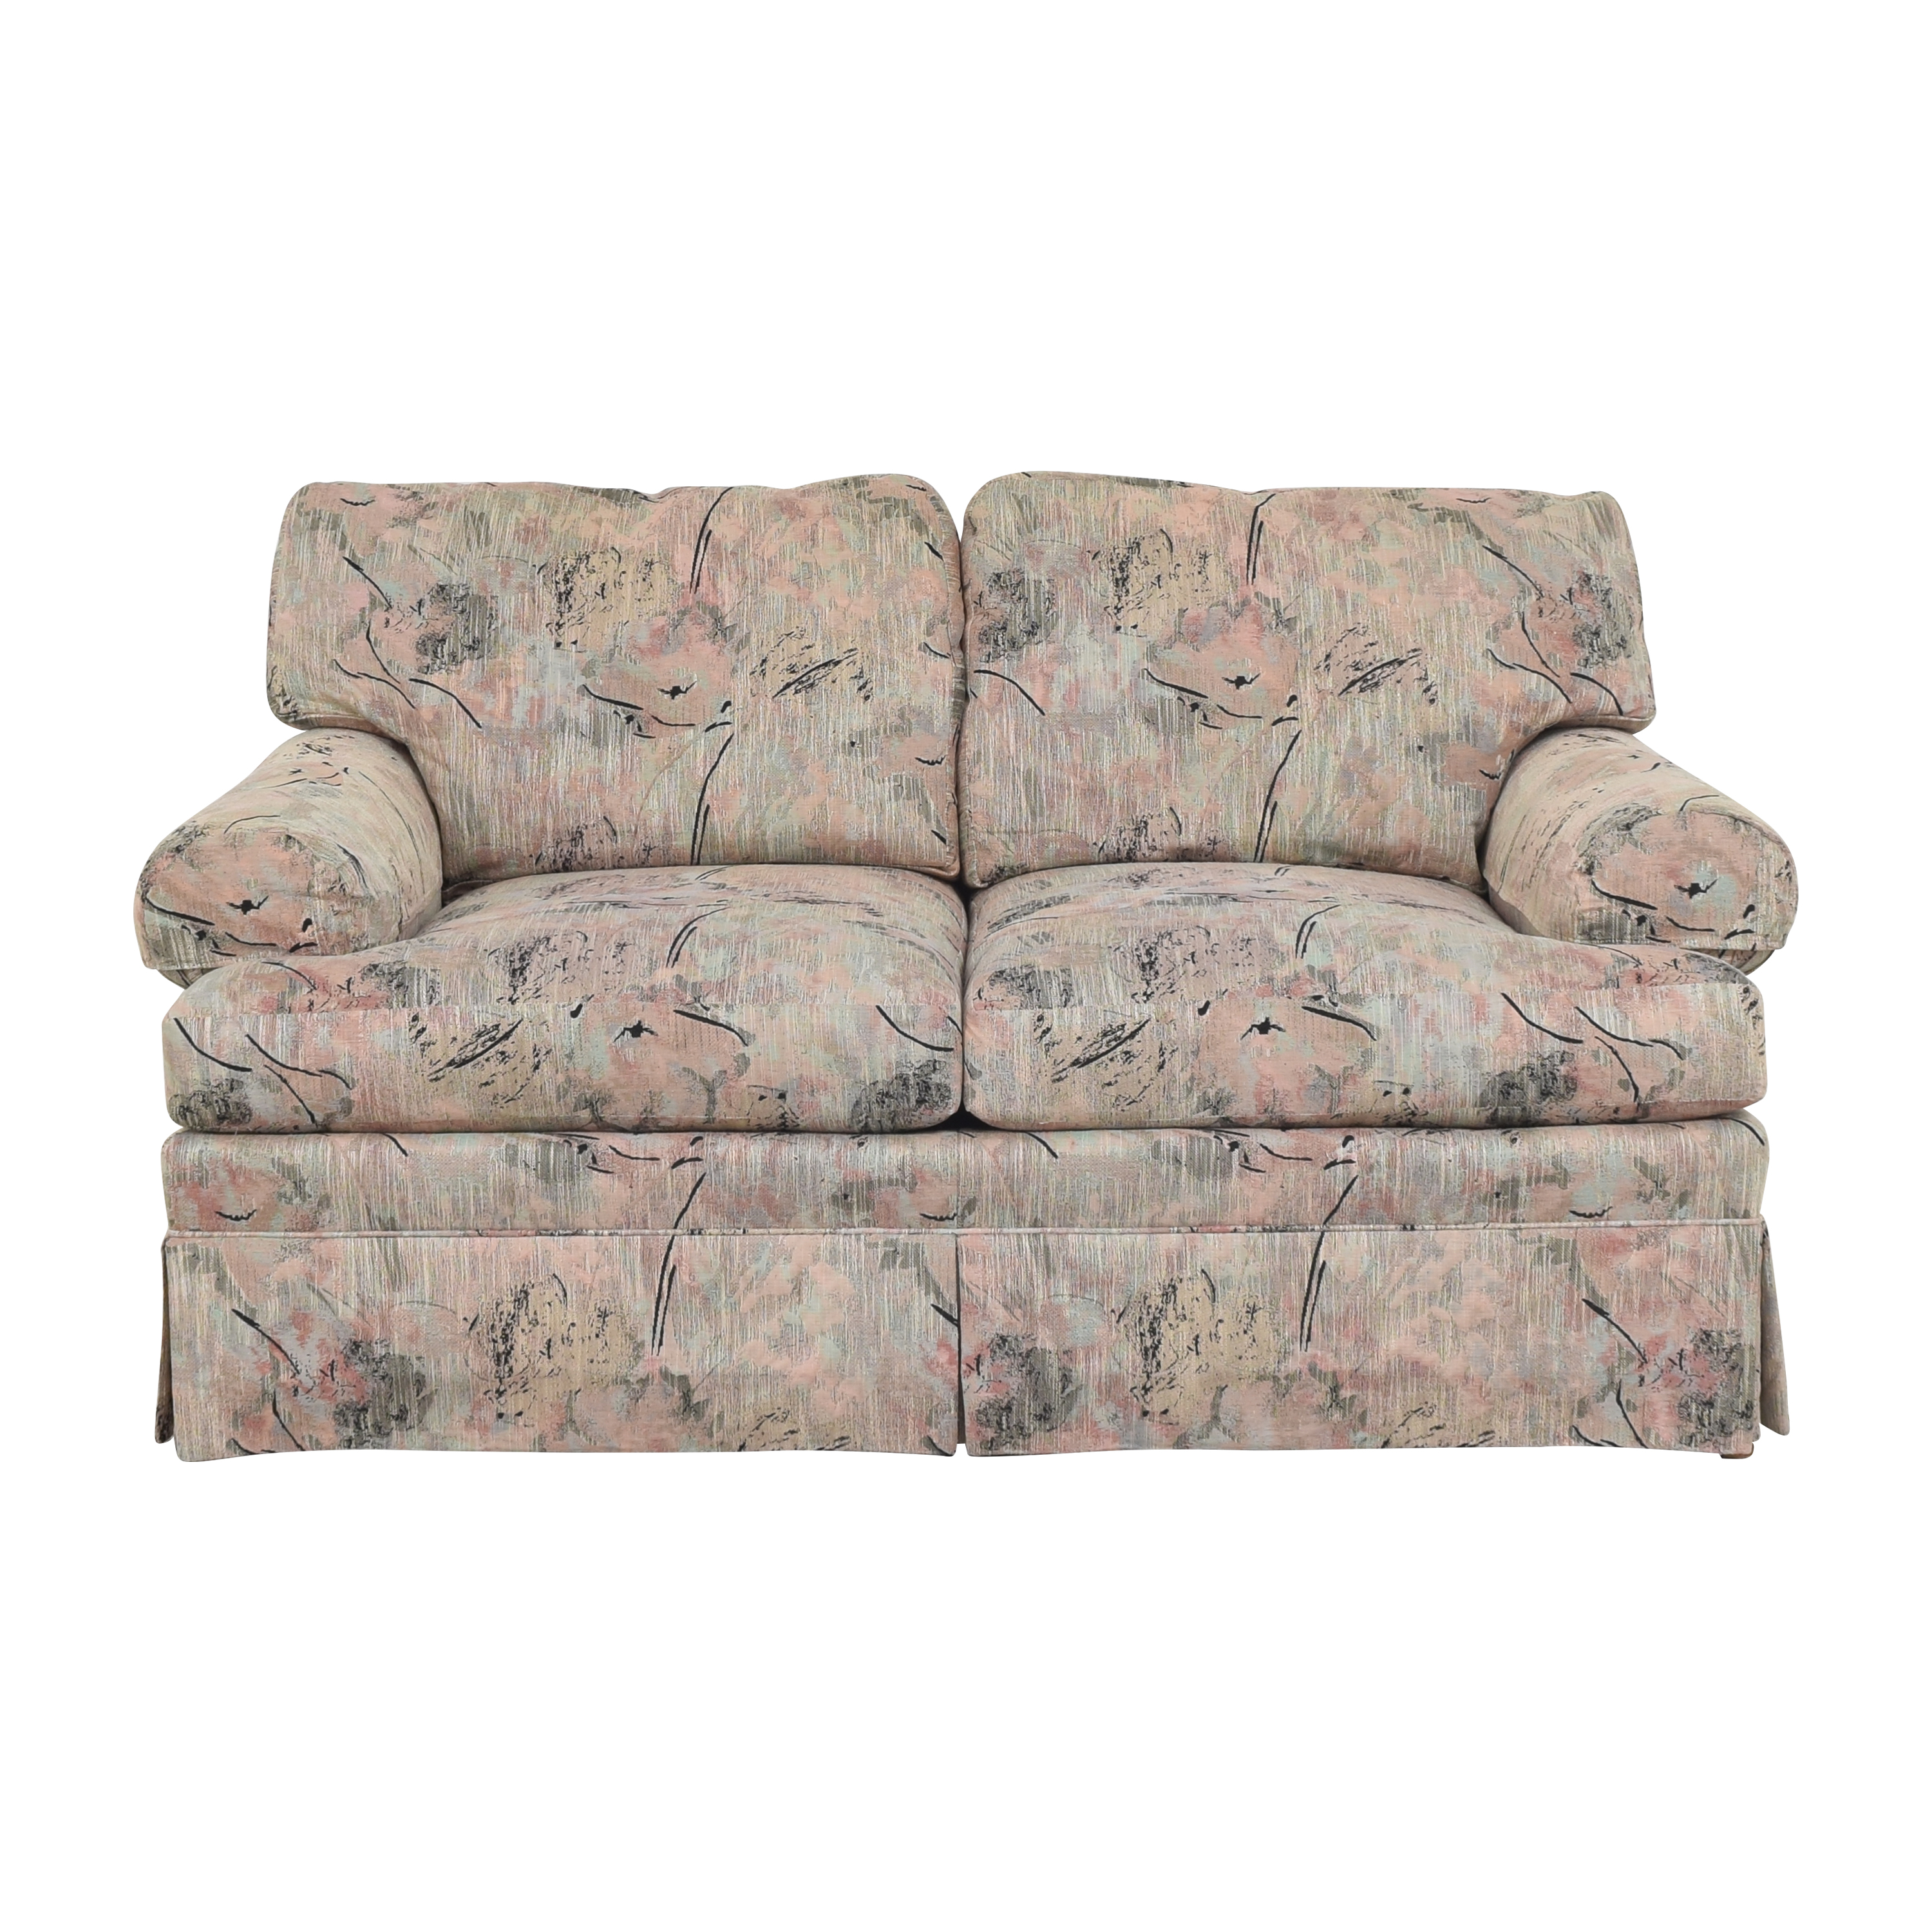 Ethan Allen Ethan Allen Two Cushion Floral Loveseat for sale